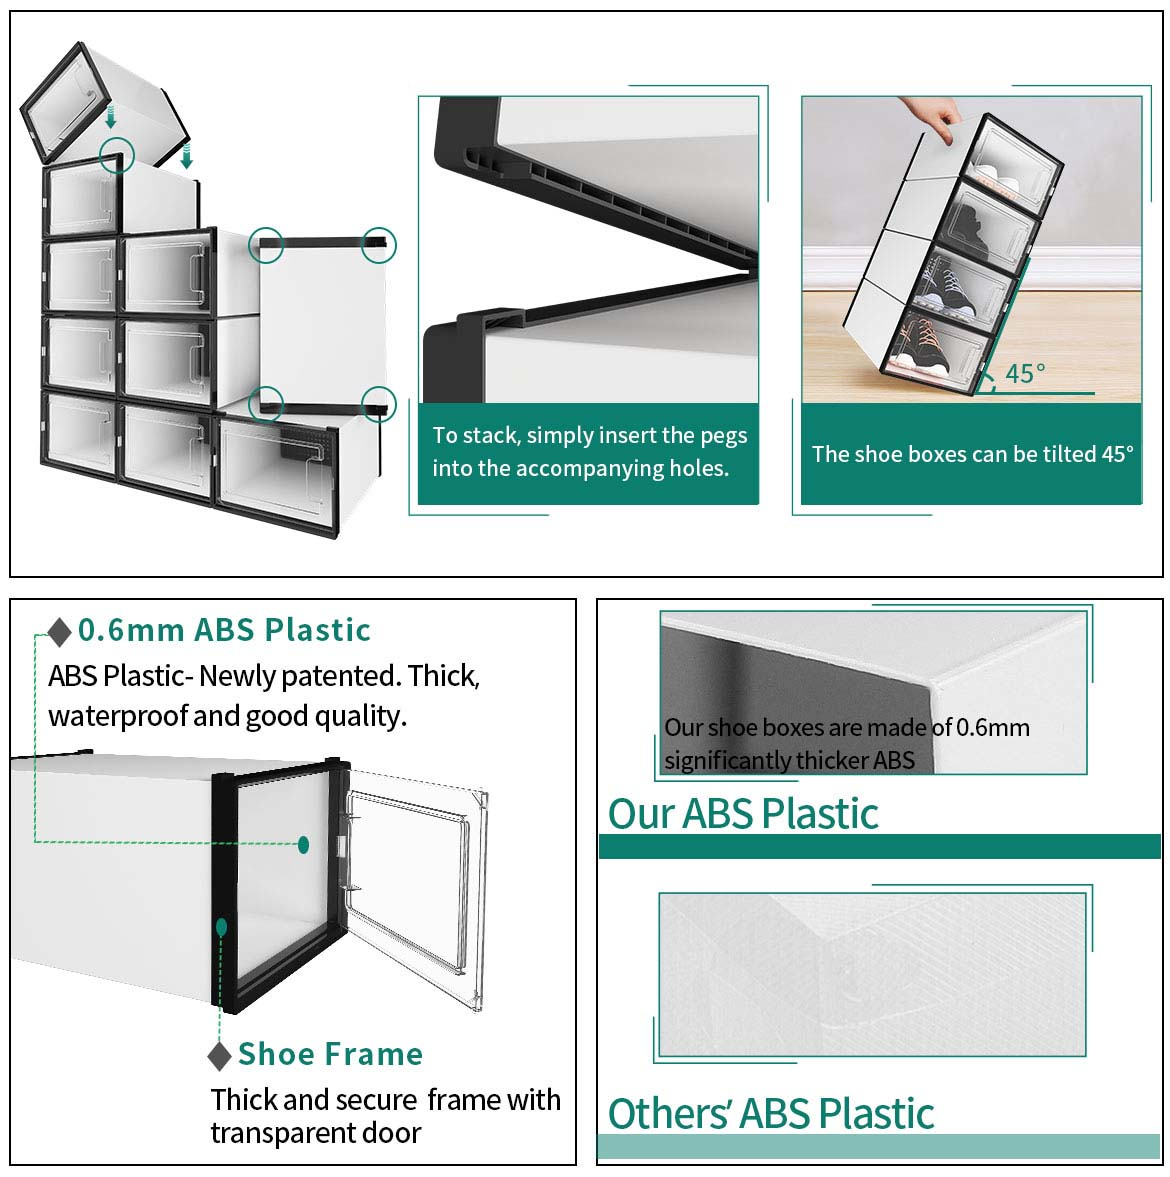 shoe boxes for storage features